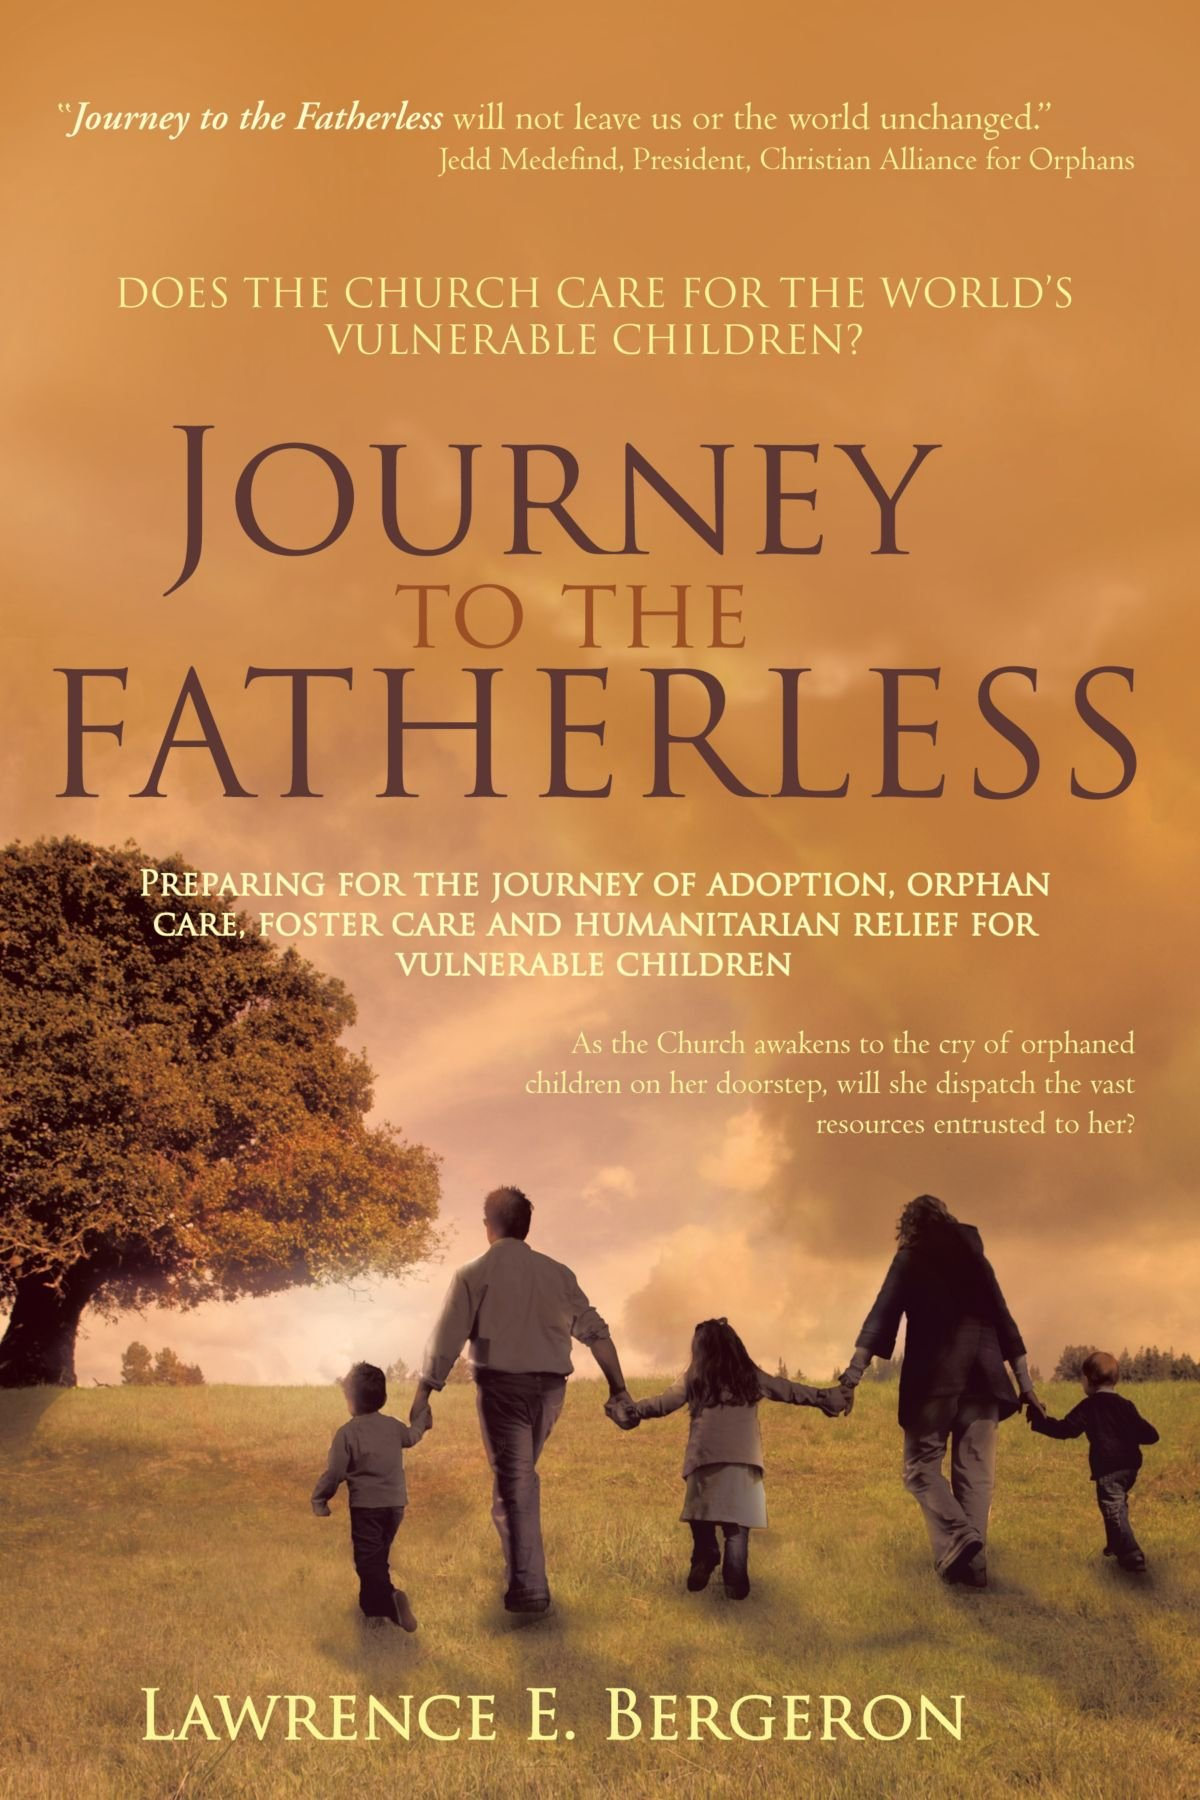 Download Journey to the Fatherless: Preparing for the Journey of Adoption, Orphan Care, Foster Care and Humanitarian Relief for Vulnerable Children pdf epub